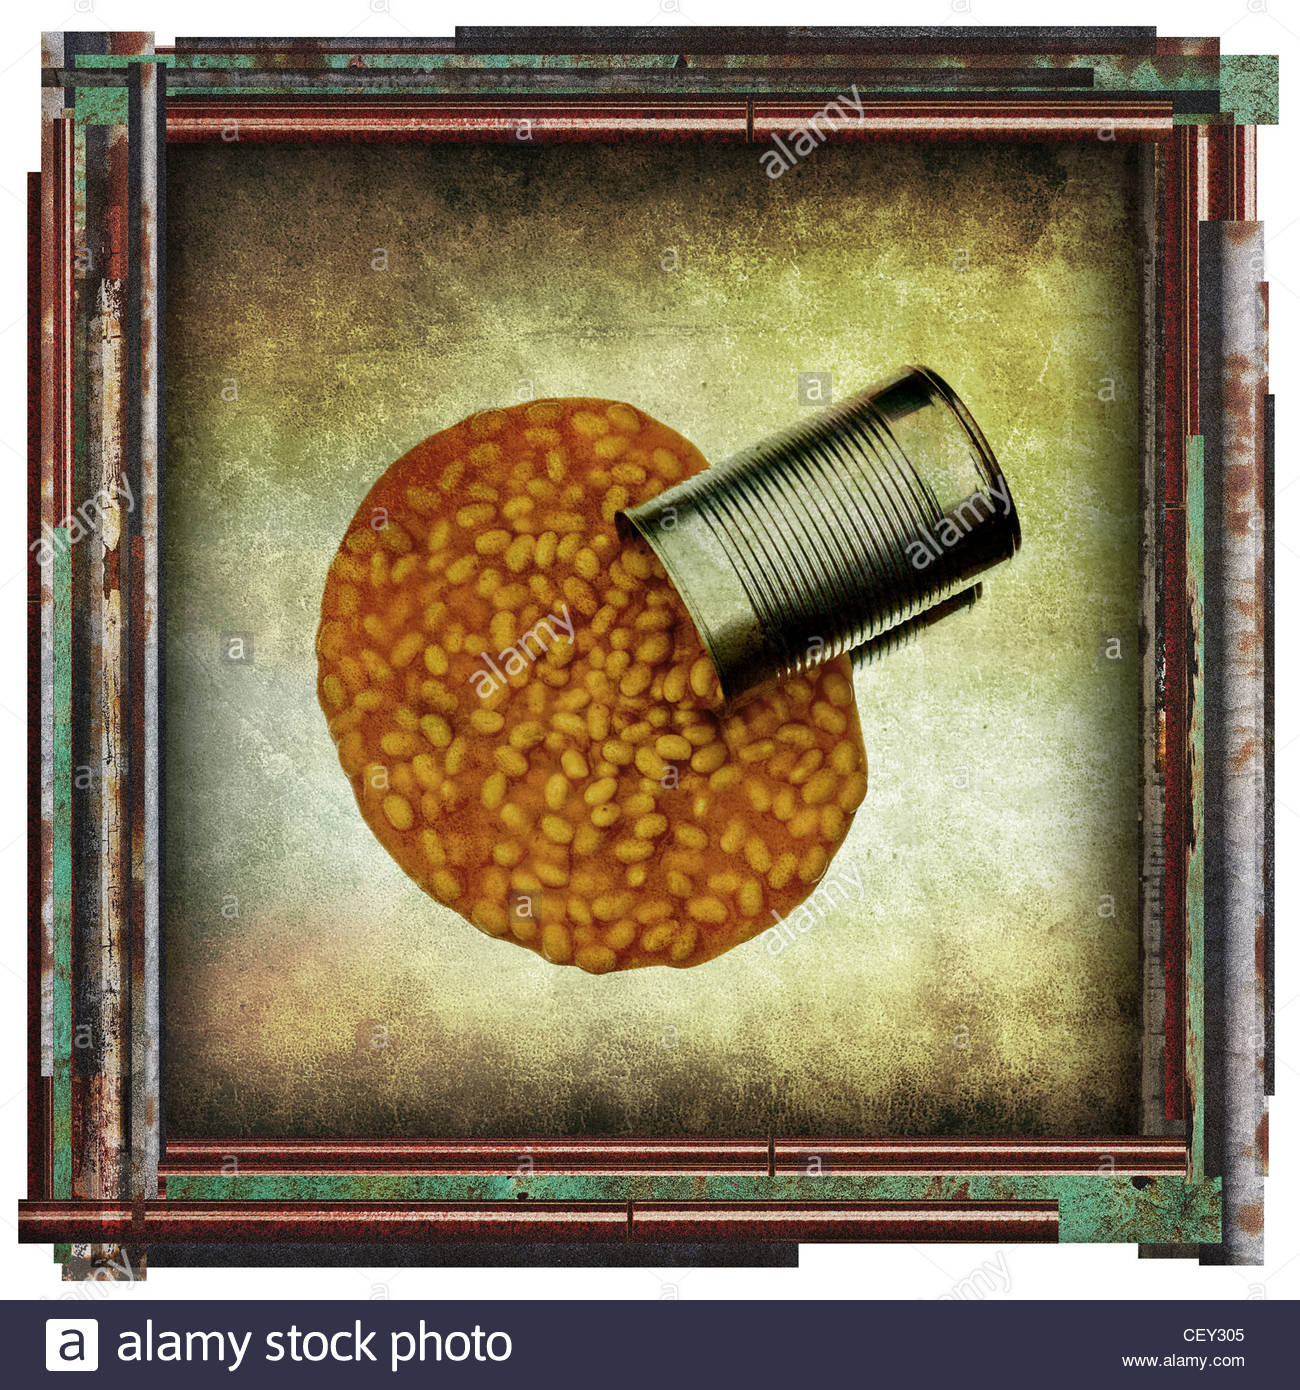 beans picture - Stock Image